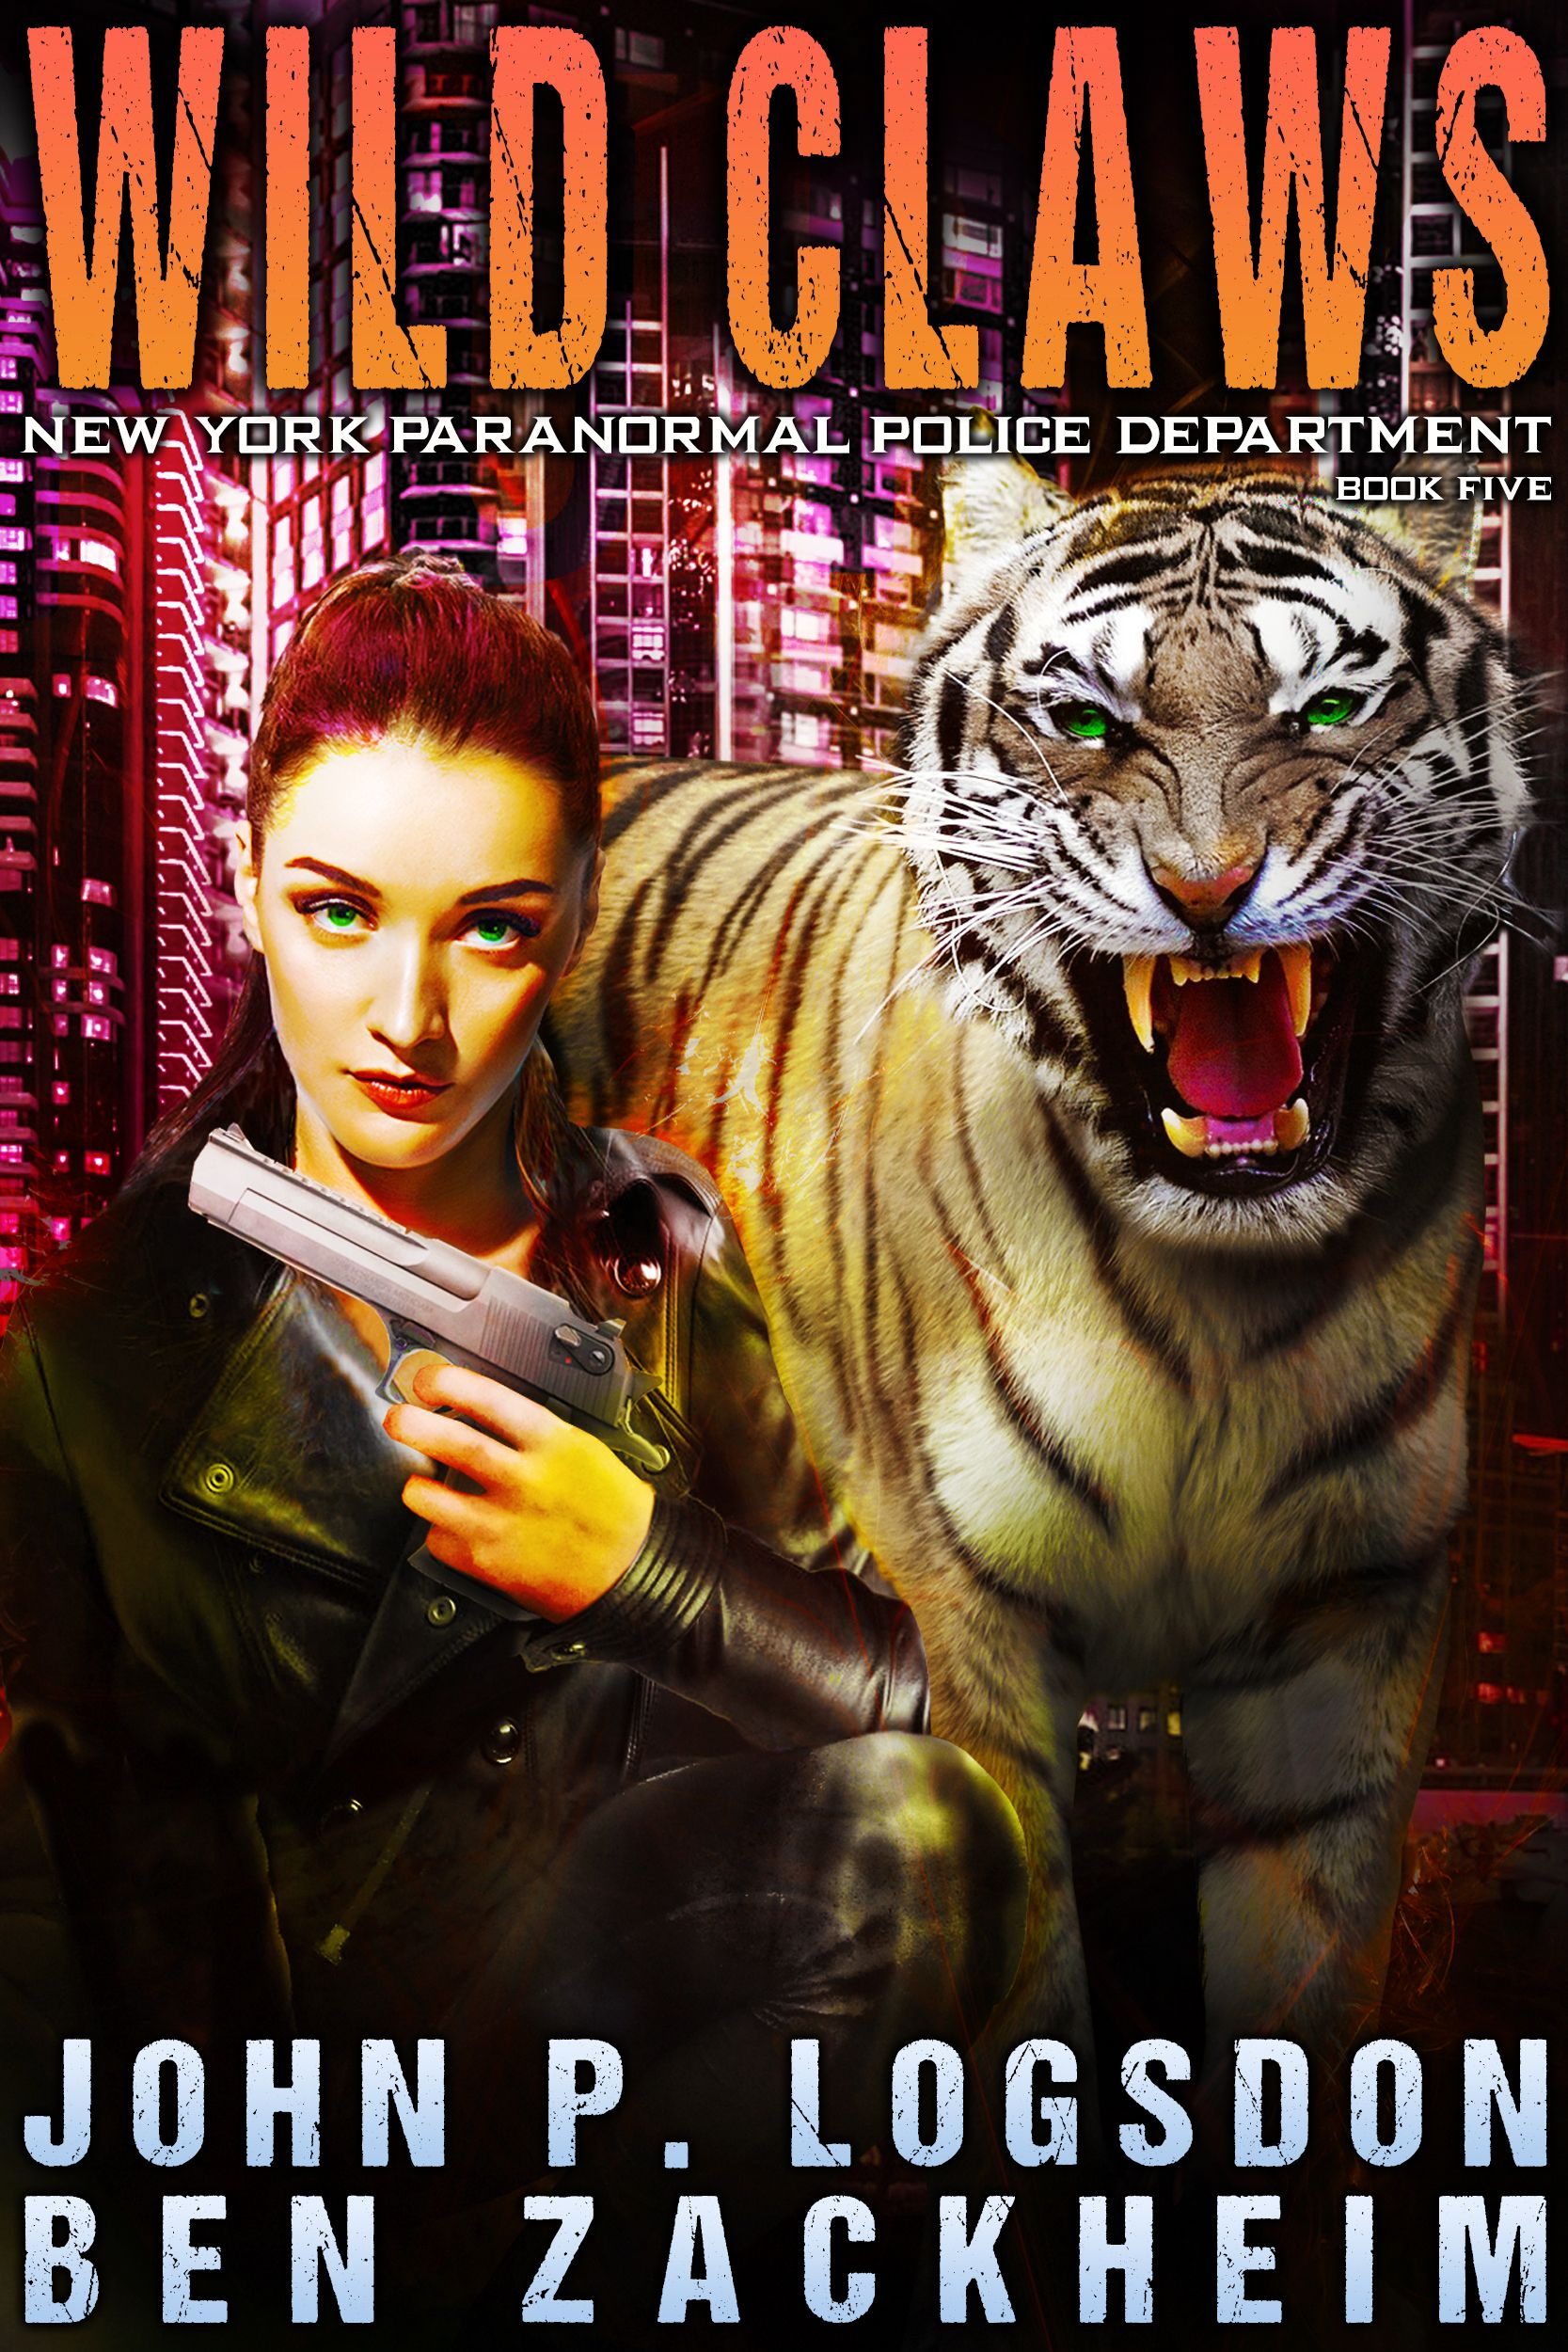 Bethany Black and her alter ego tiger stand ready for battle